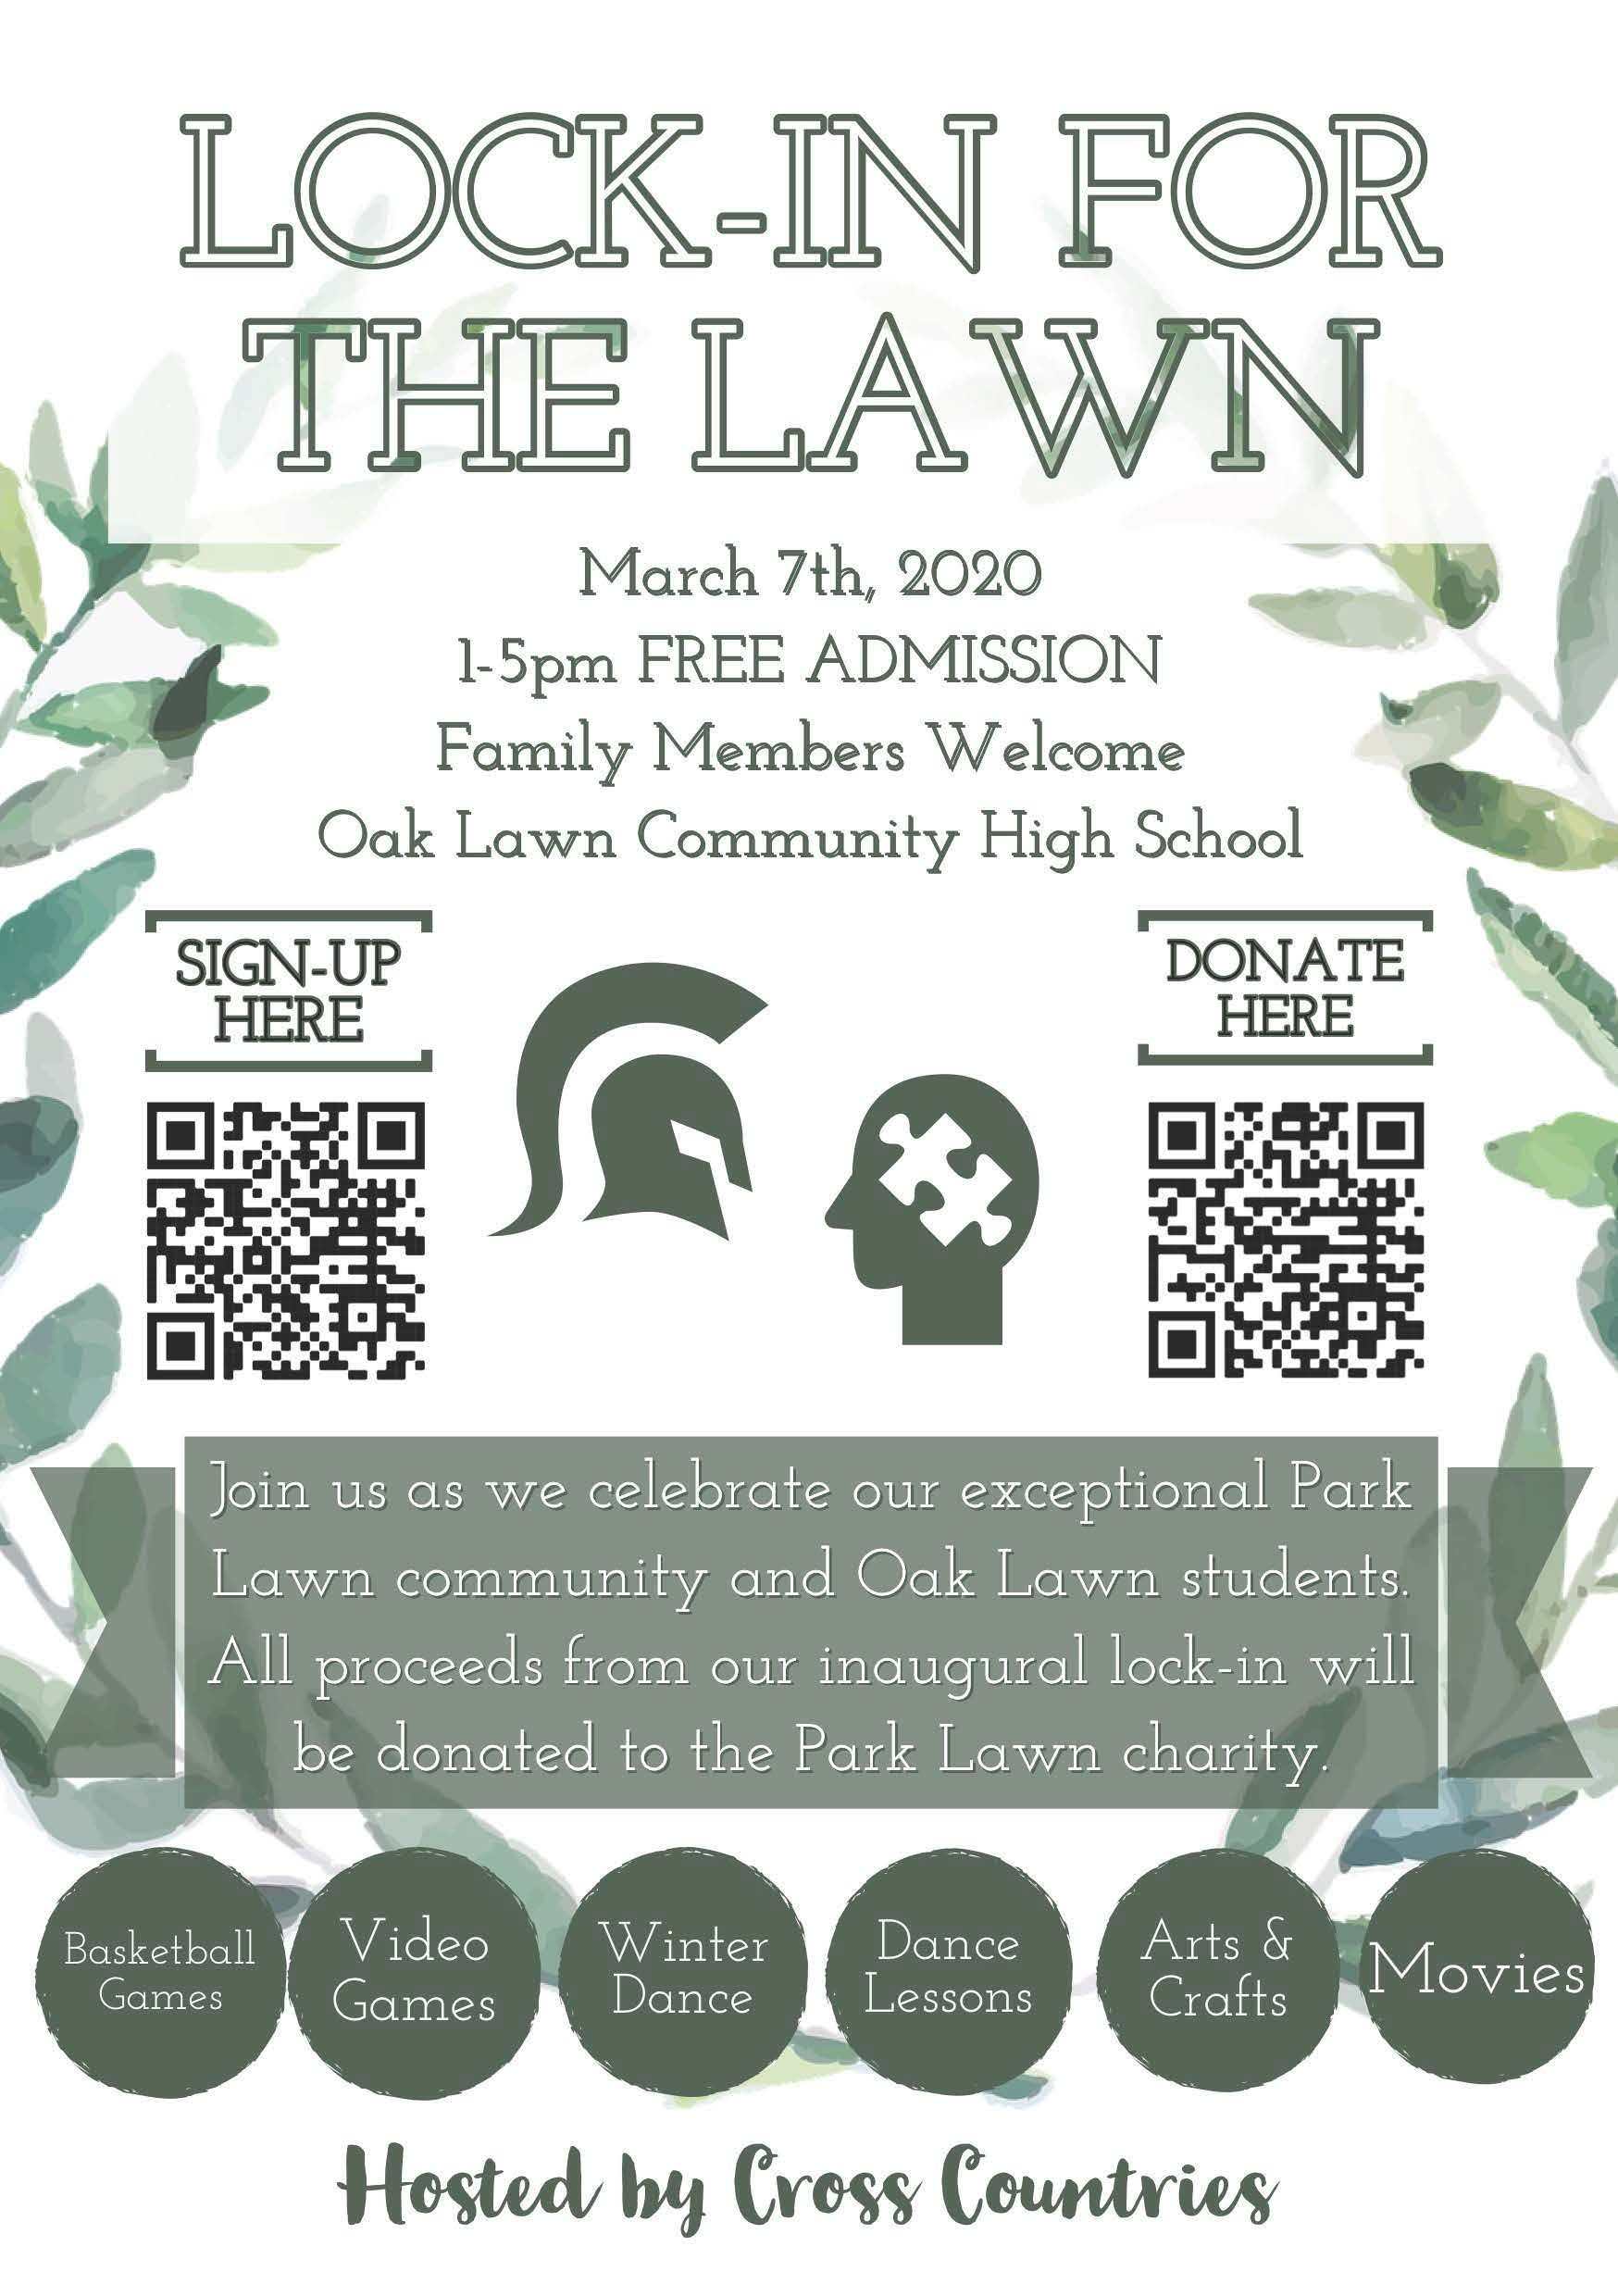 Lock-In For The Lawn